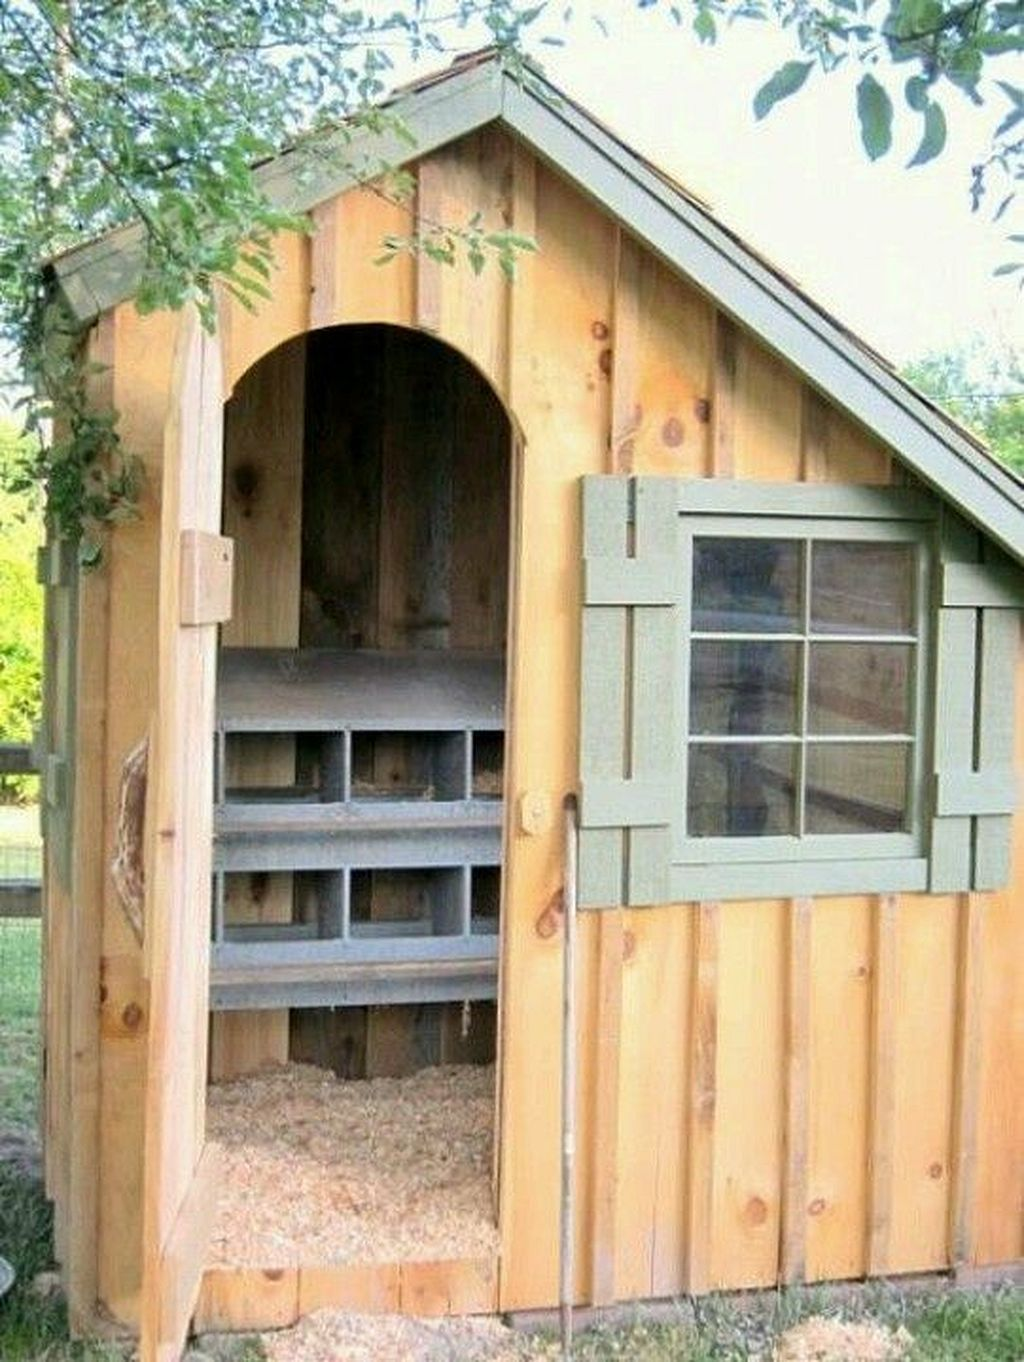 55 Backyard Chicken Coop Design Ideas | Backyard chicken coops ...